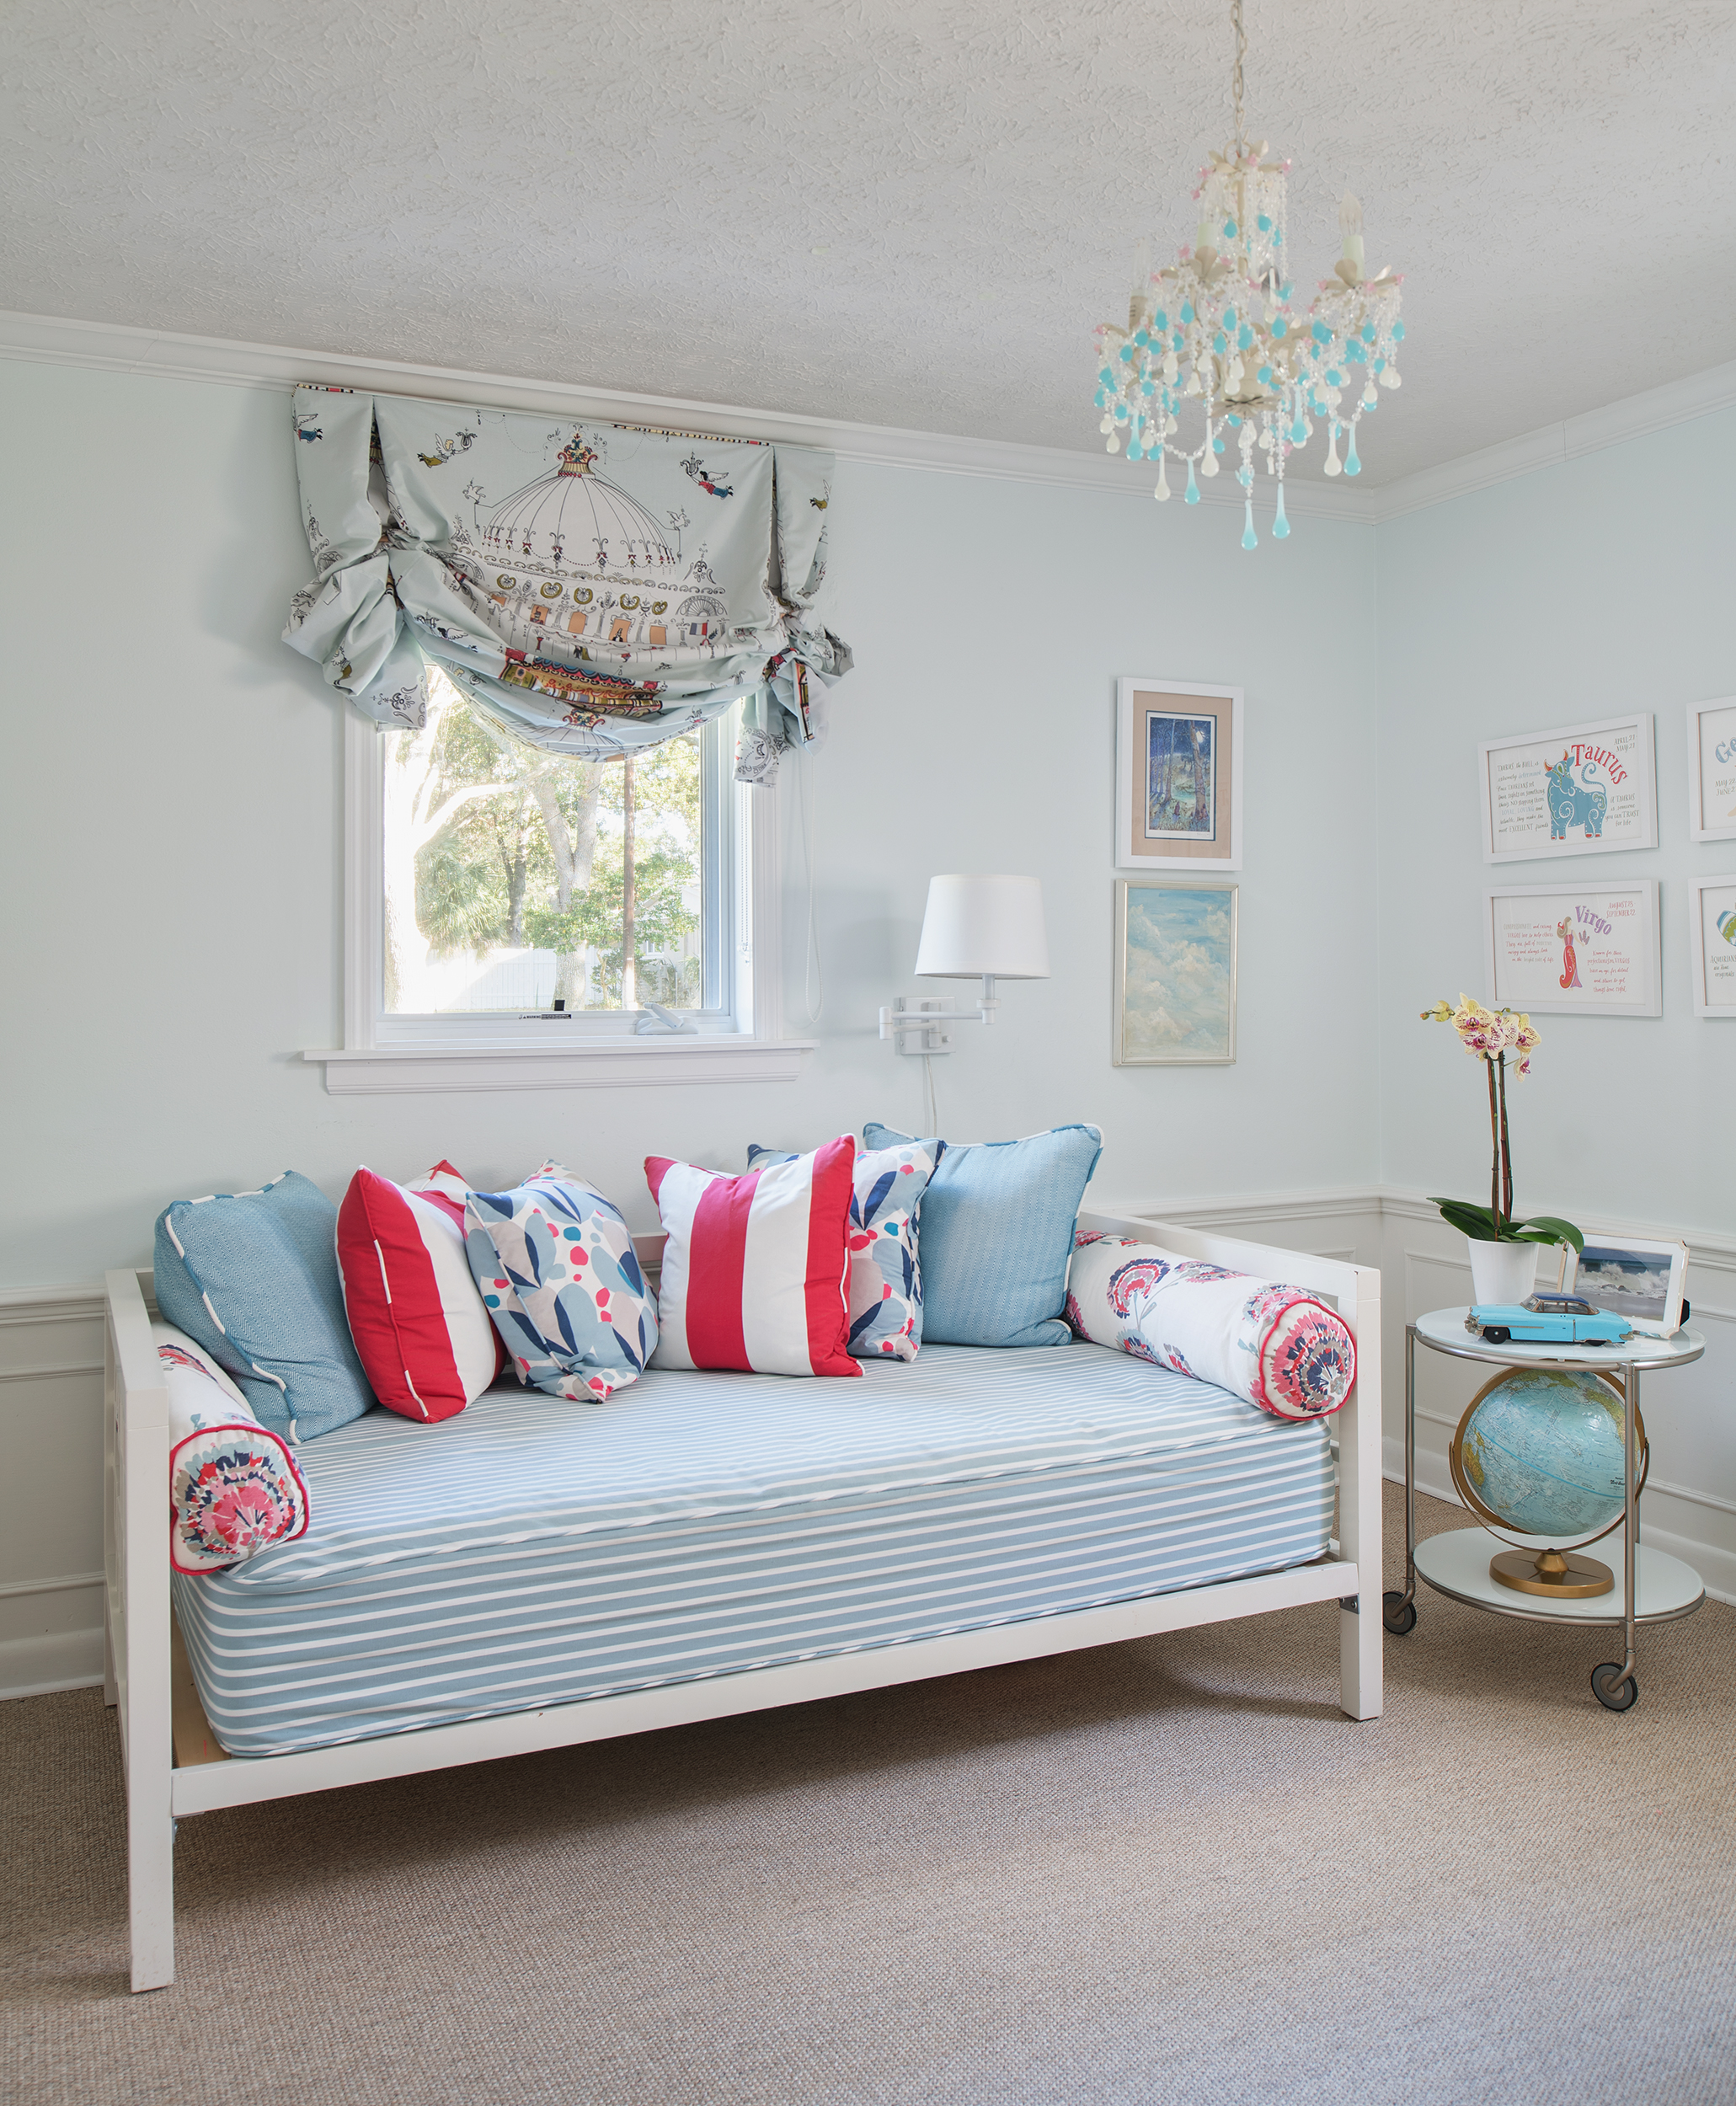 Kylie-Italiano---Shore-Crest-House---Kids-Bedroom-final.jpg